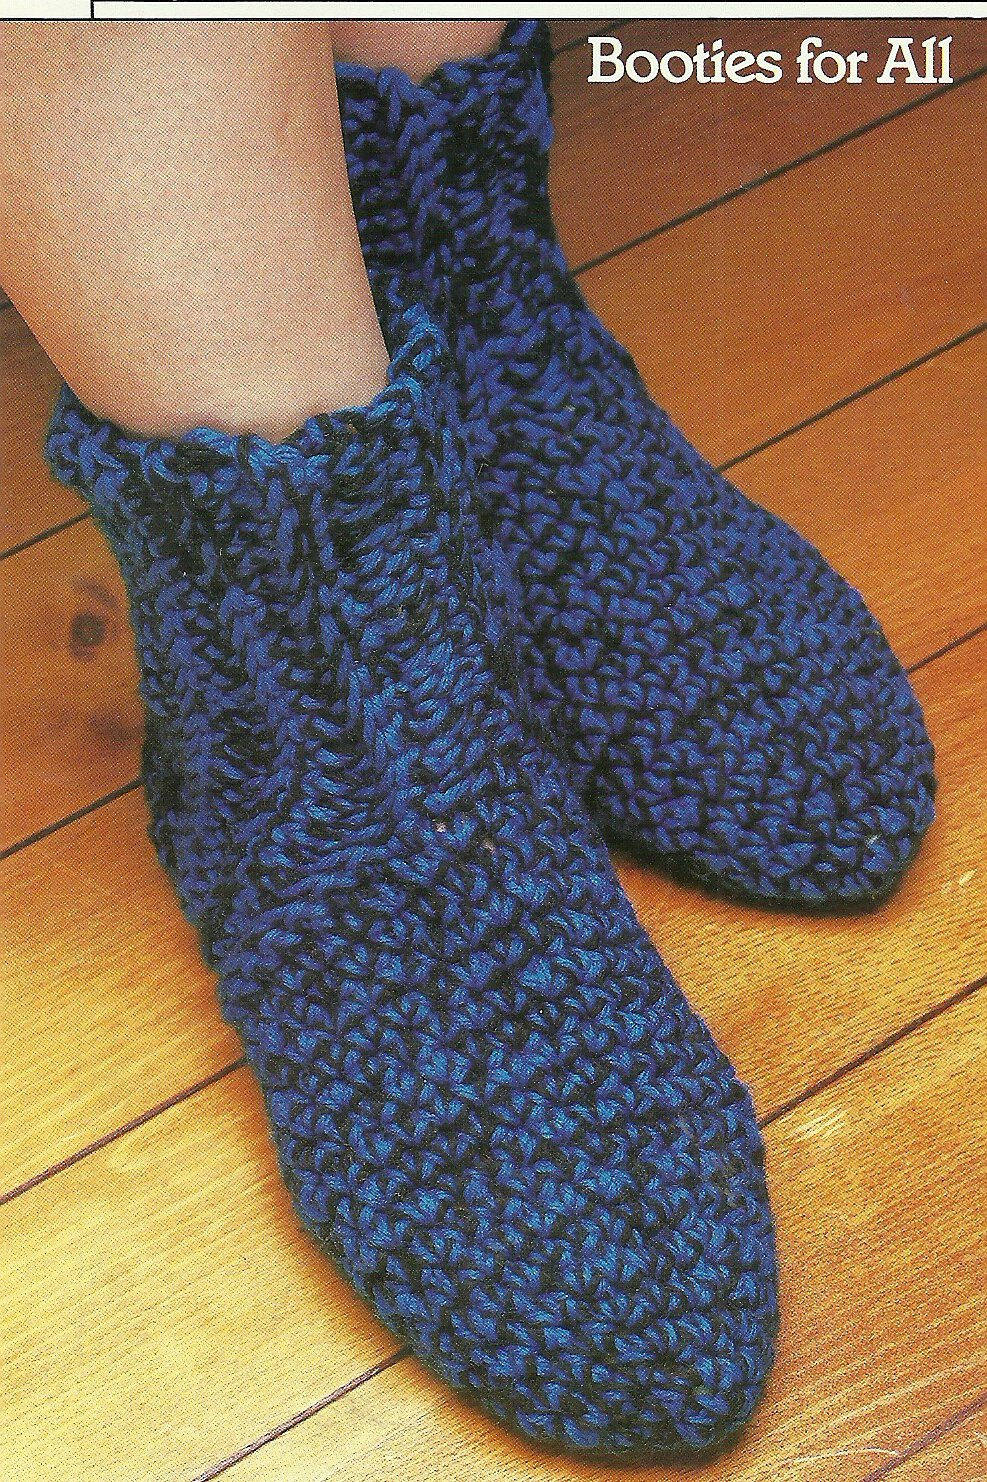 *Annie's Attic Crochet Booties for All - Sleeper for Baby